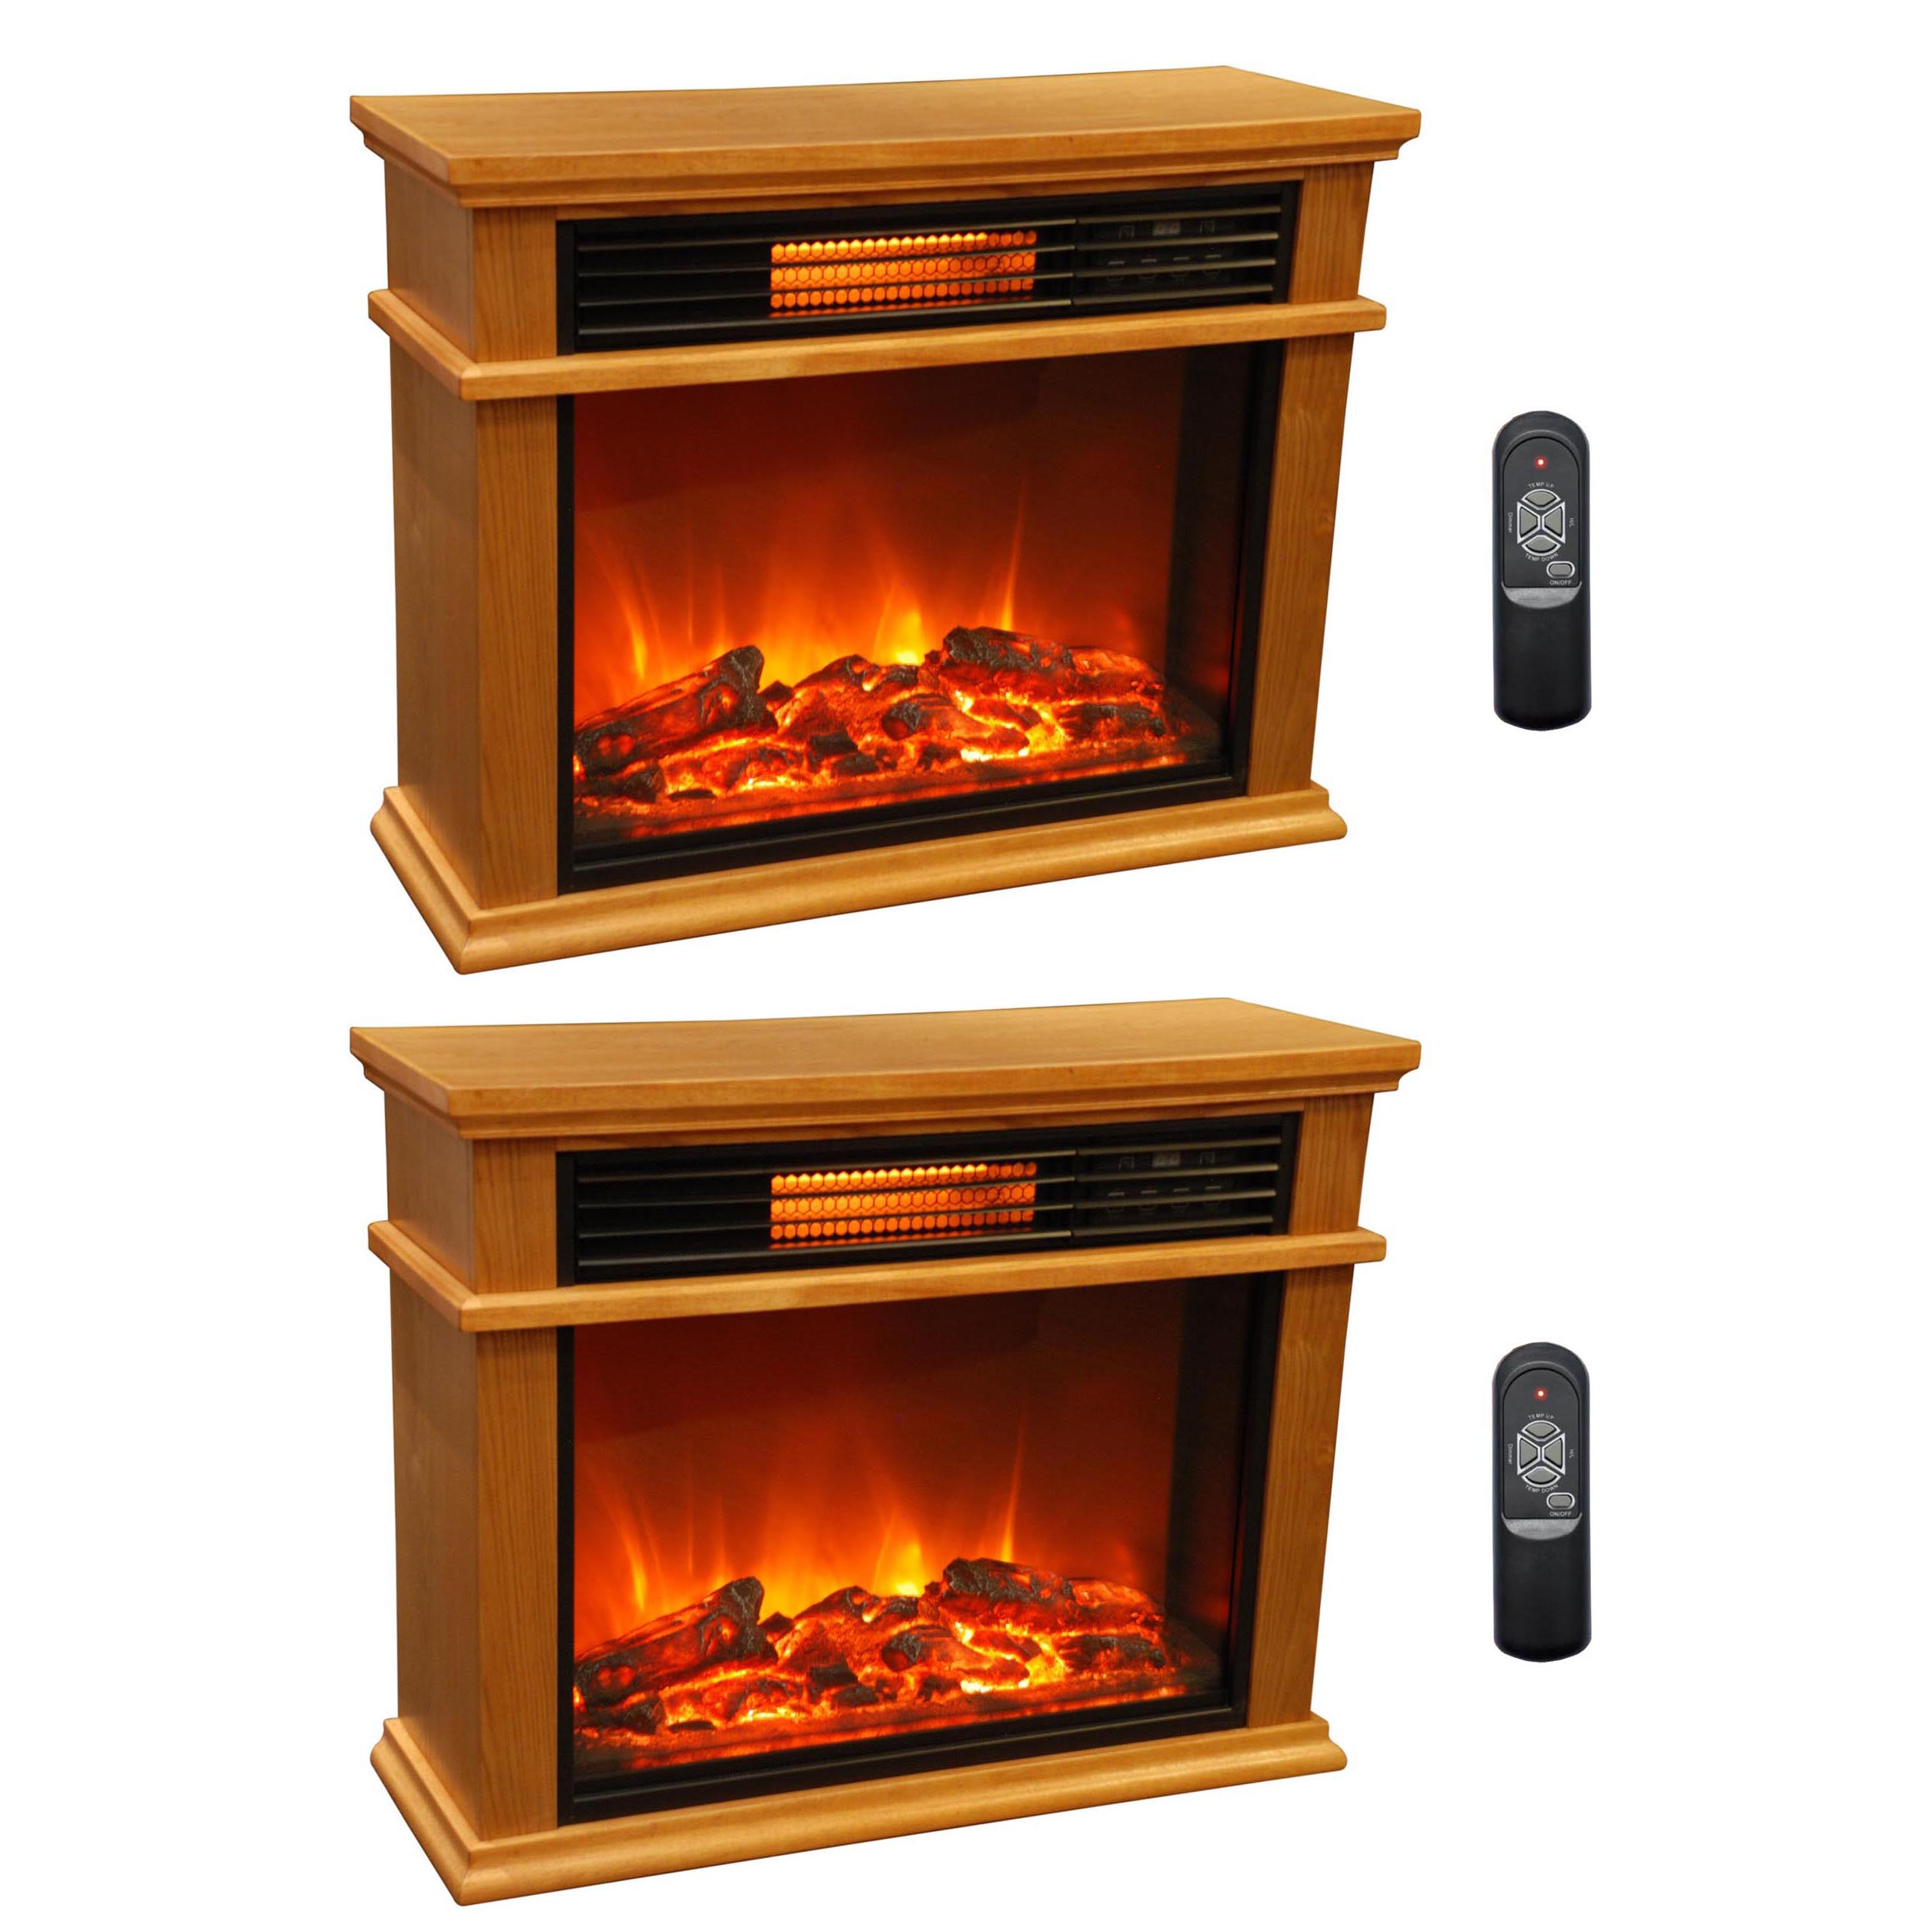 LifeSmart LifePro 3 Element Portable Electric Infrared Fireplace ...